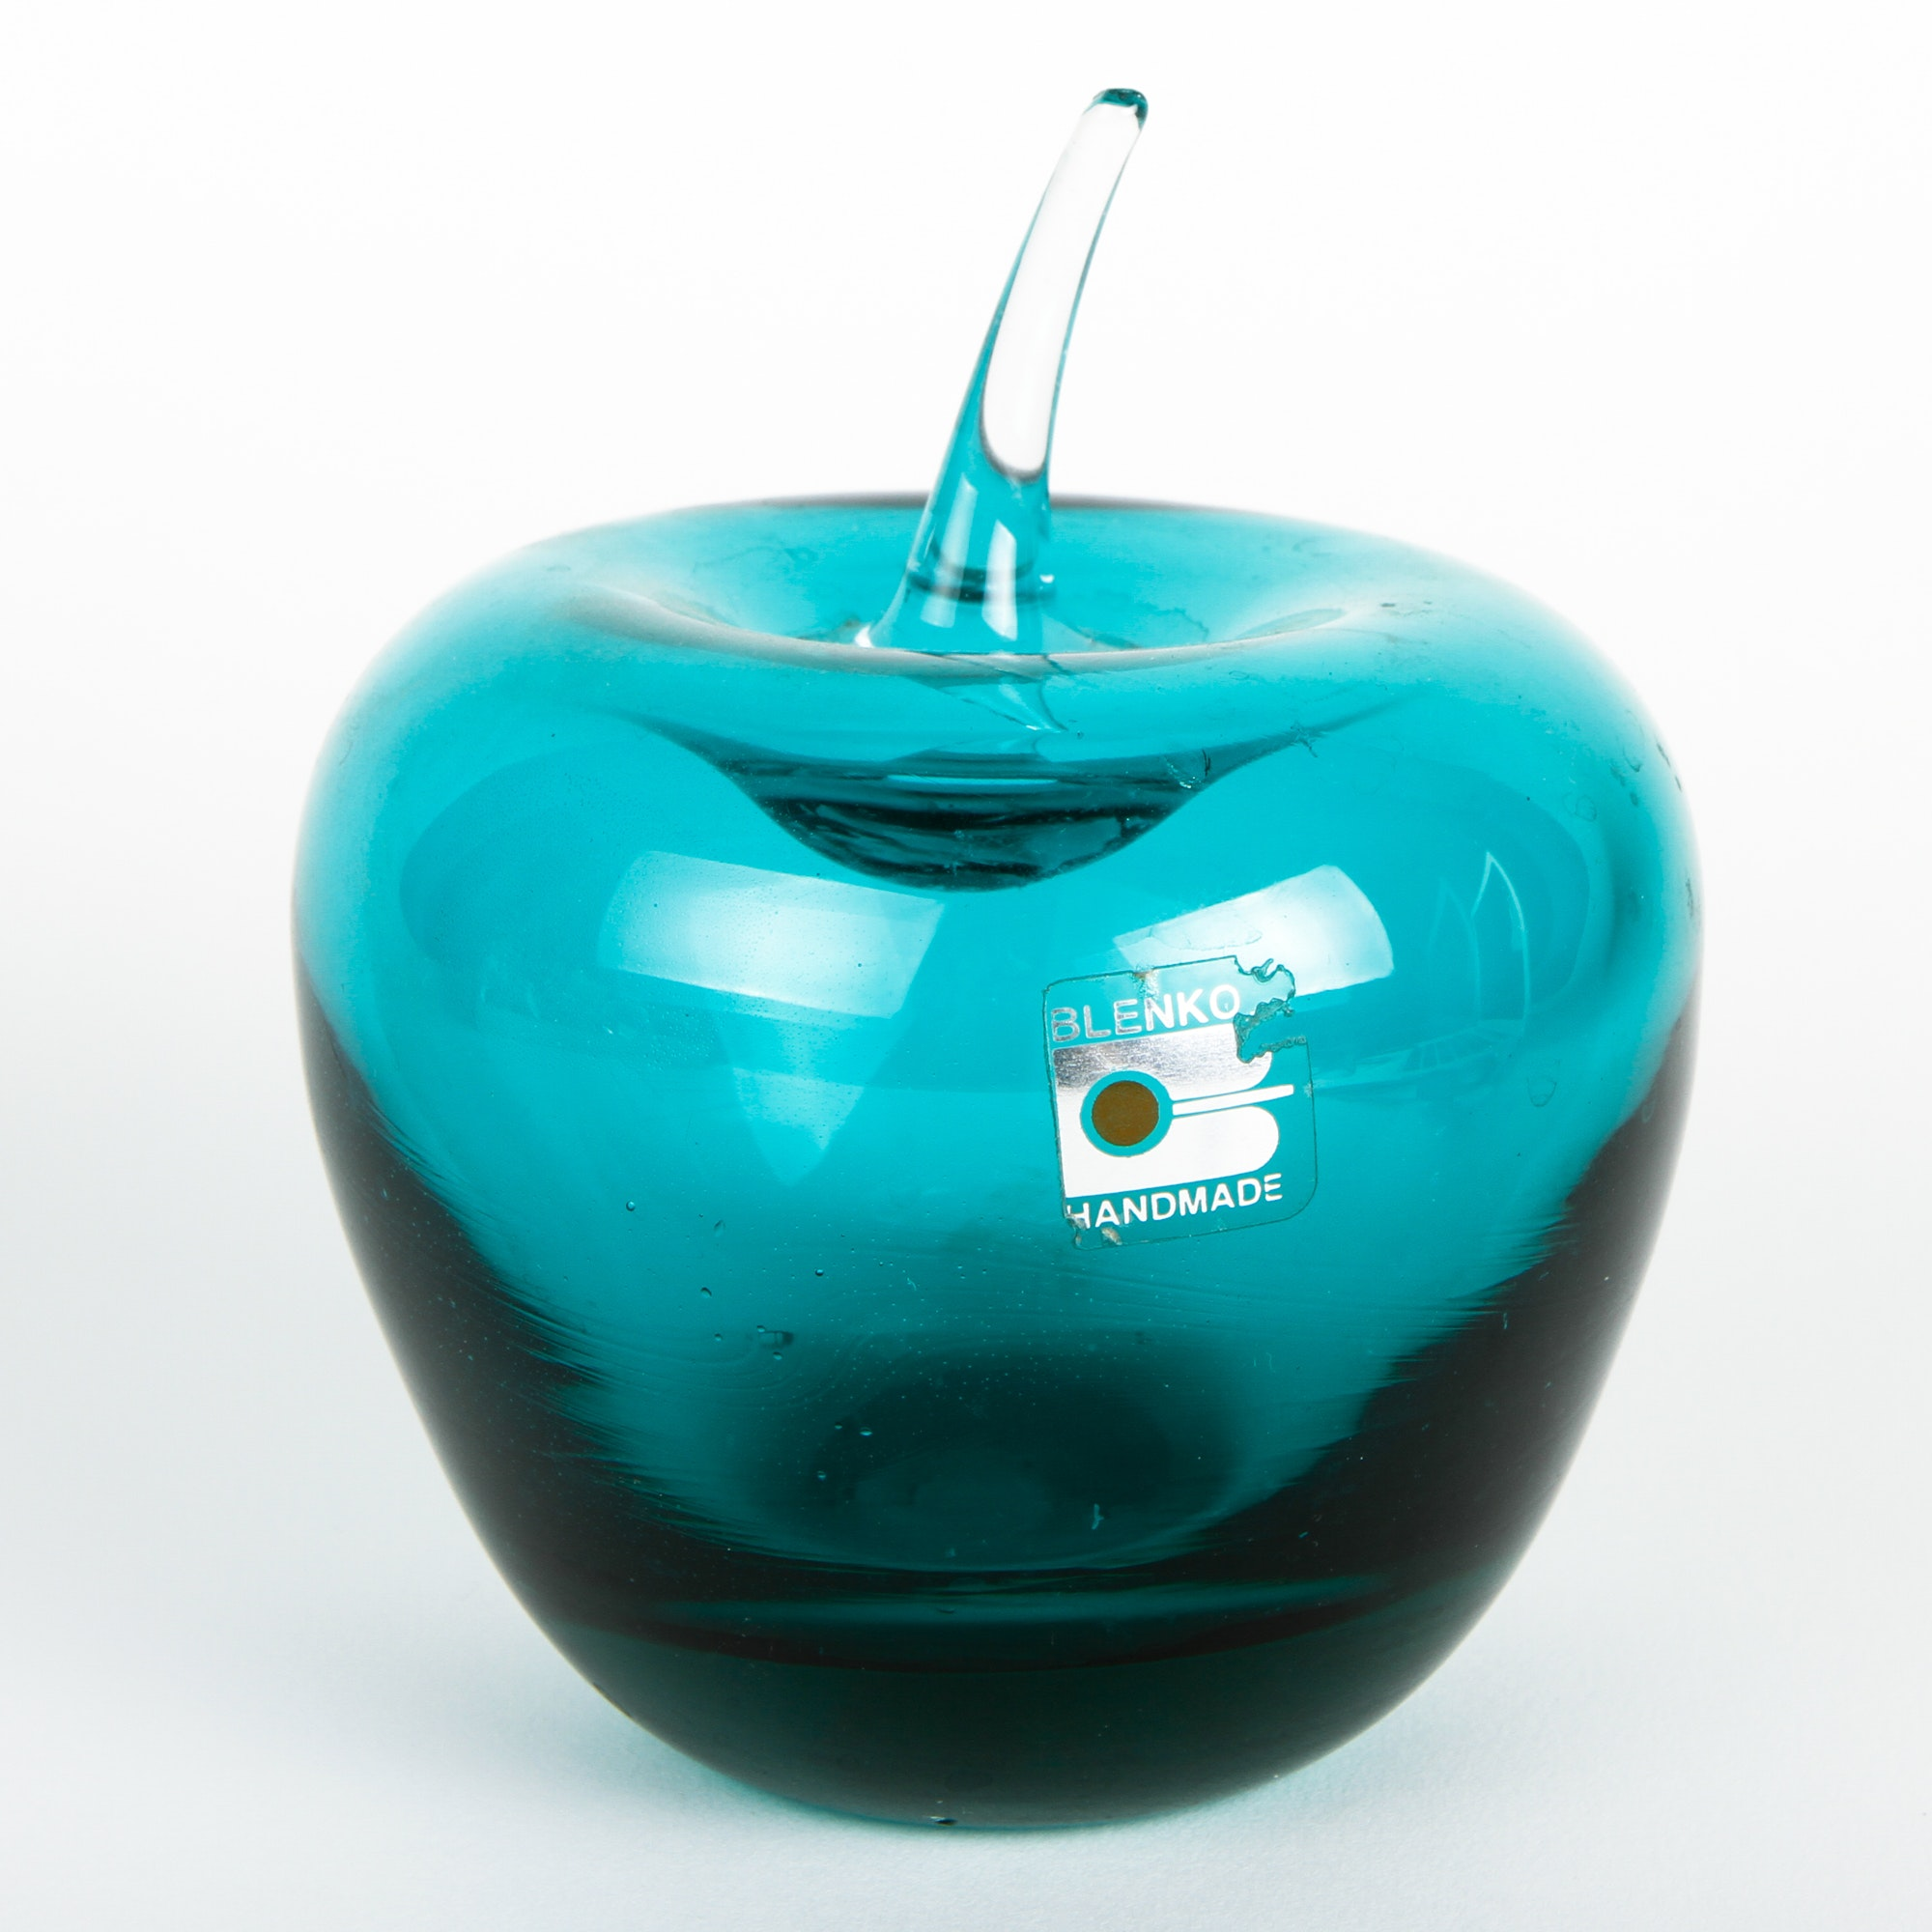 Blenko Green Apple Paperweight